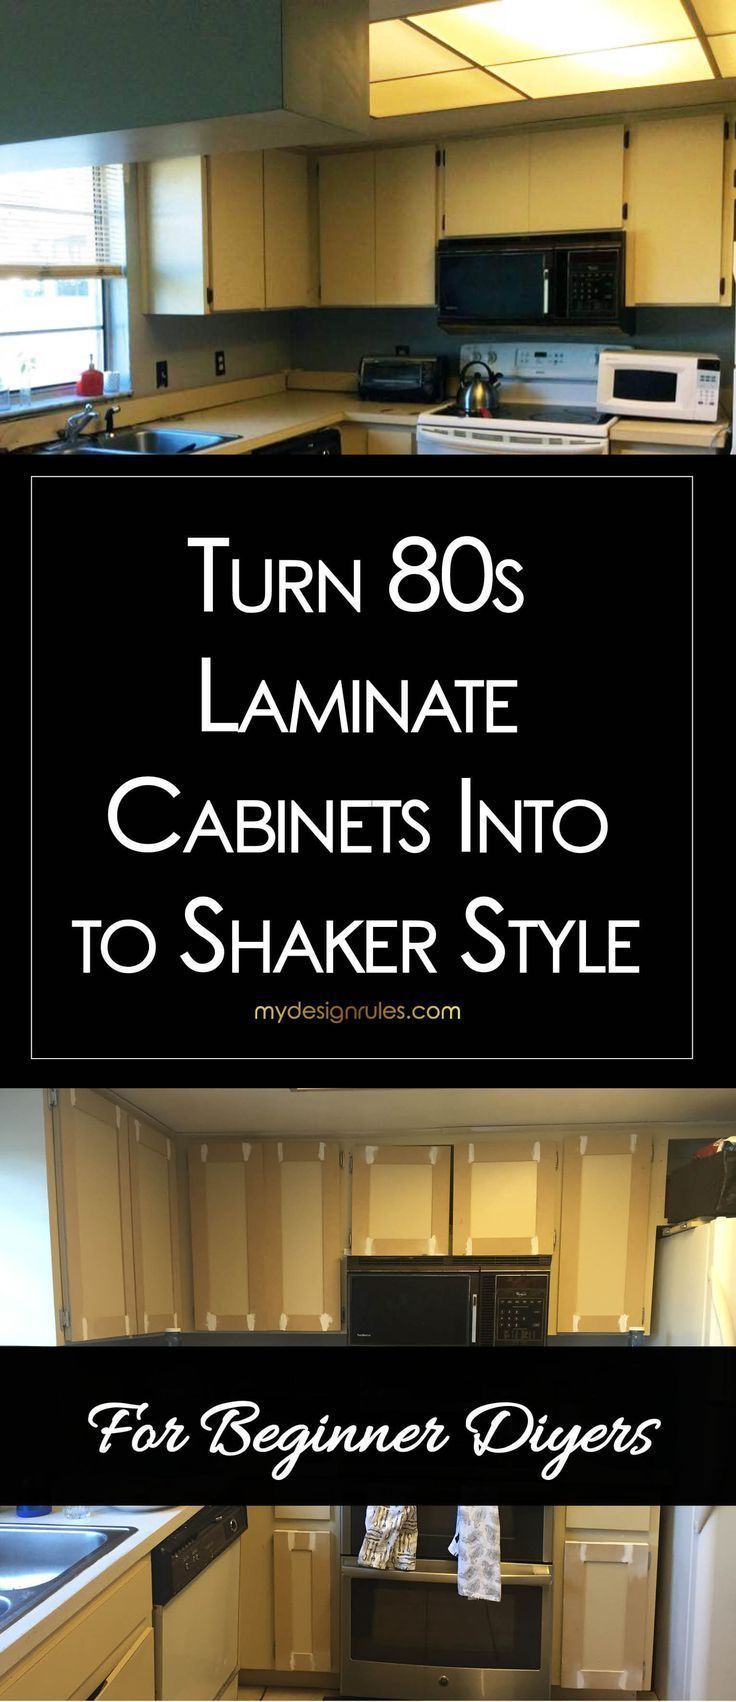 Update Your 80s Laminate Cabinets With Classic Shaker Style Doors Diy Your Kitchen Upgrade With Th Cabinet Makeover Diy Kitchen Diy Makeover Laminate Cabinets